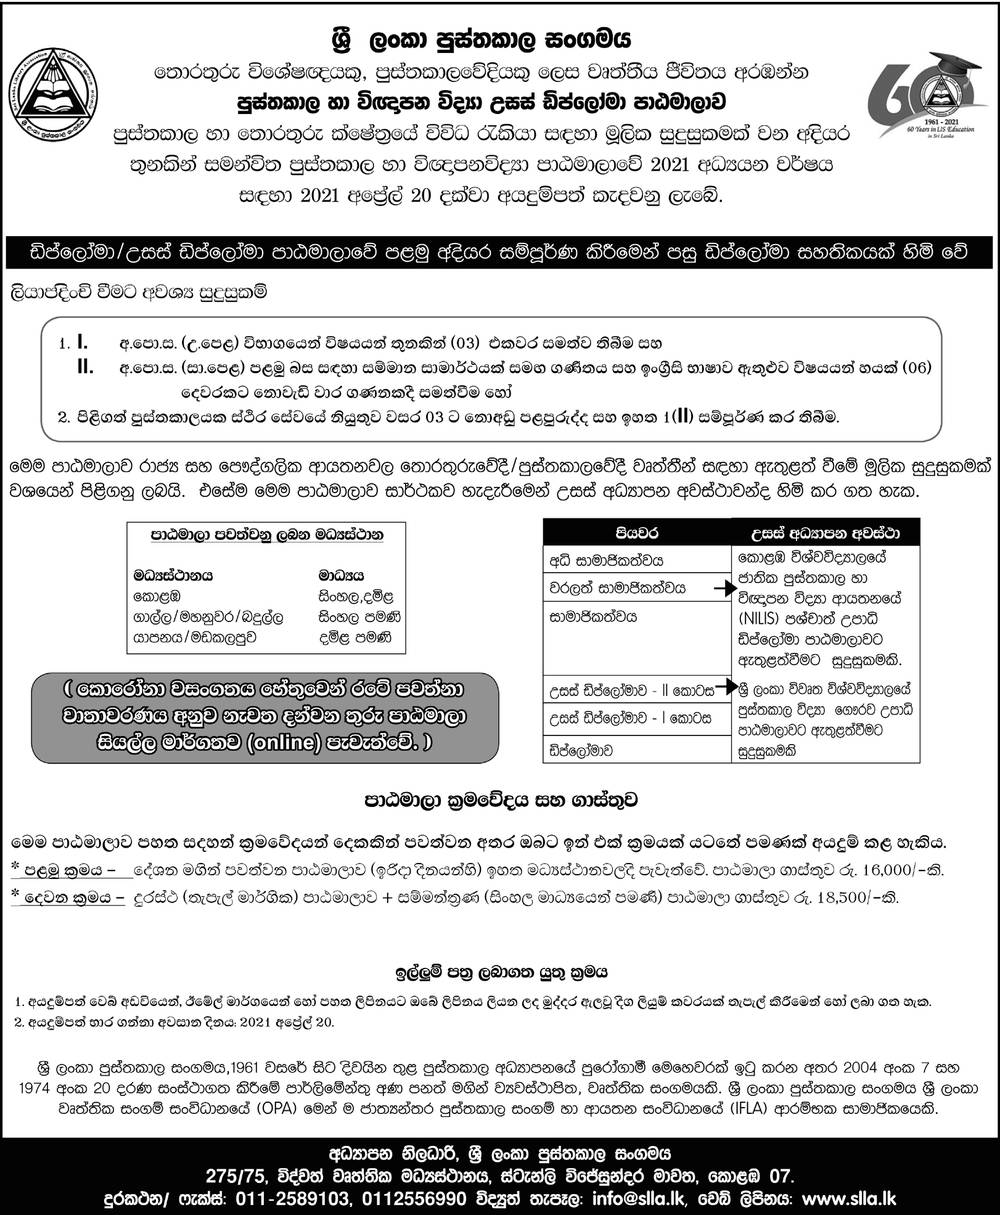 Diploma/Higher Diploma in Library & Information Science - 2021/22 - Sri Lanka Library Association